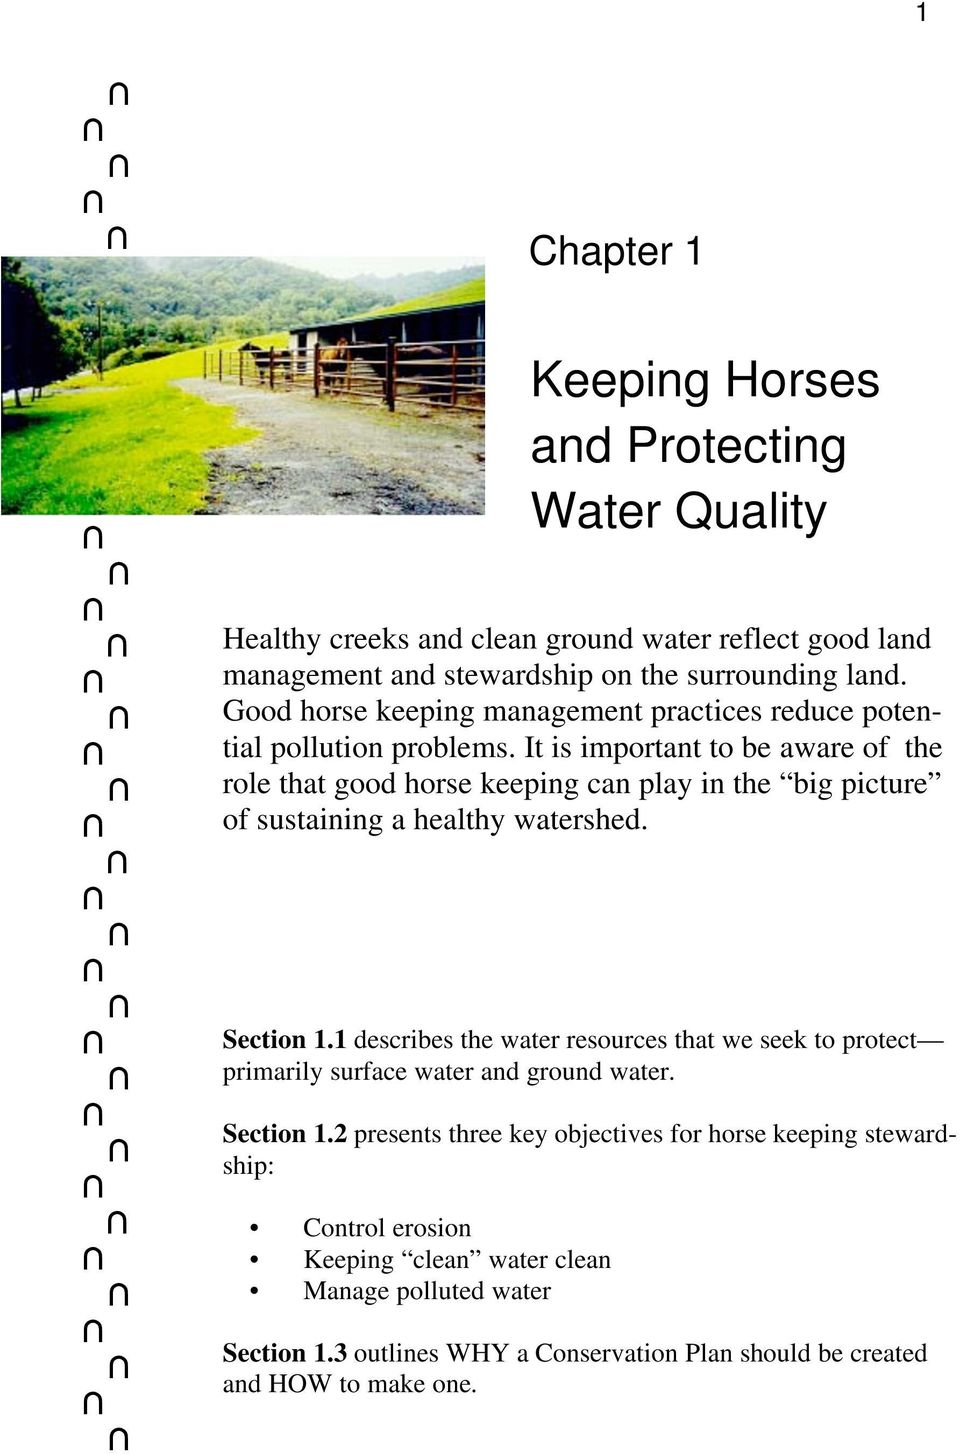 It is important to be aware of the role that good horse keeping can play in the big picture of sustaining a healthy watershed. Section 1.